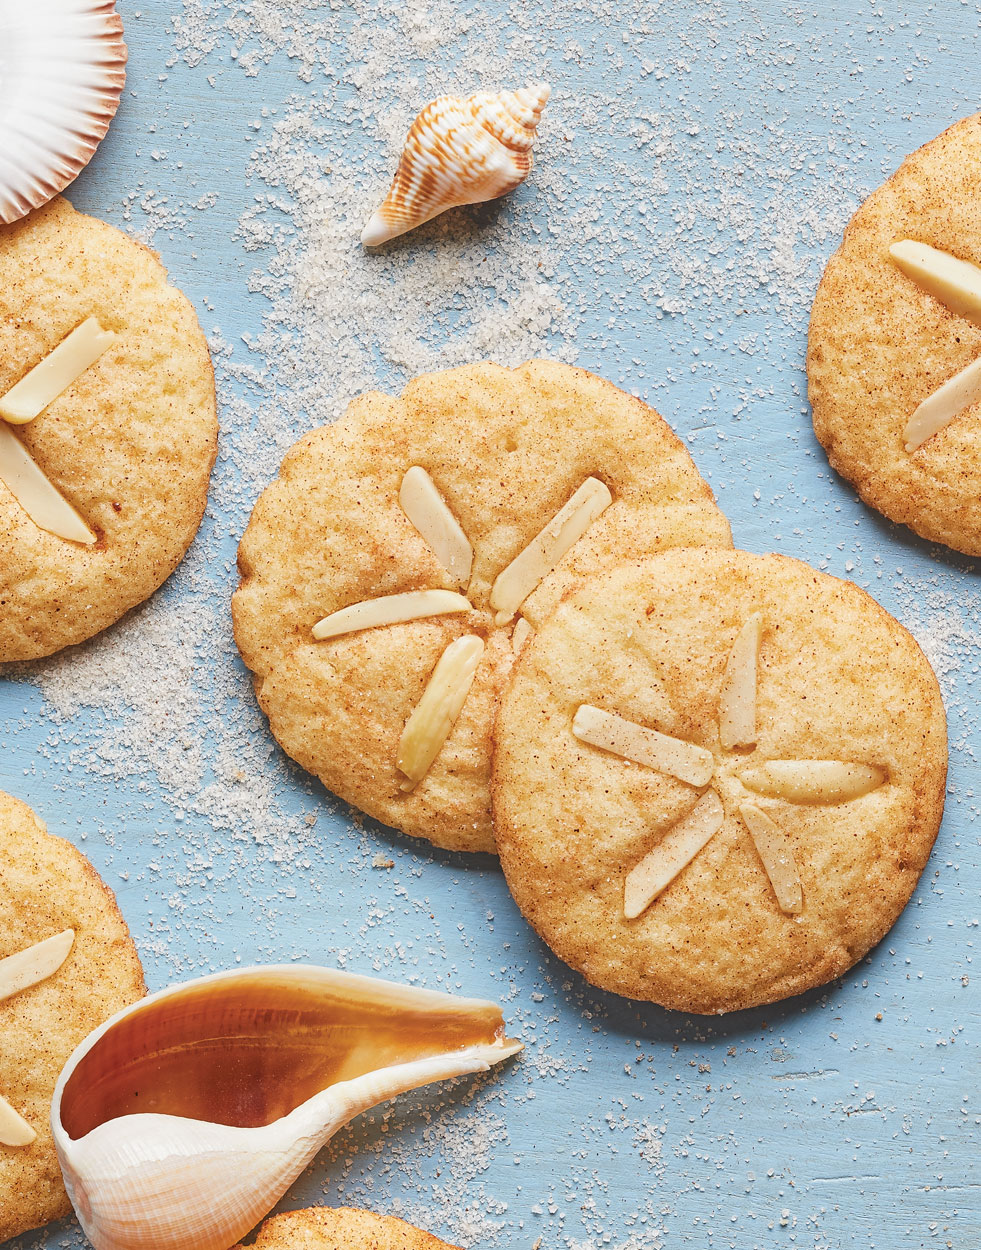 Cinnamon-Sugar Sand Dollar Cookies